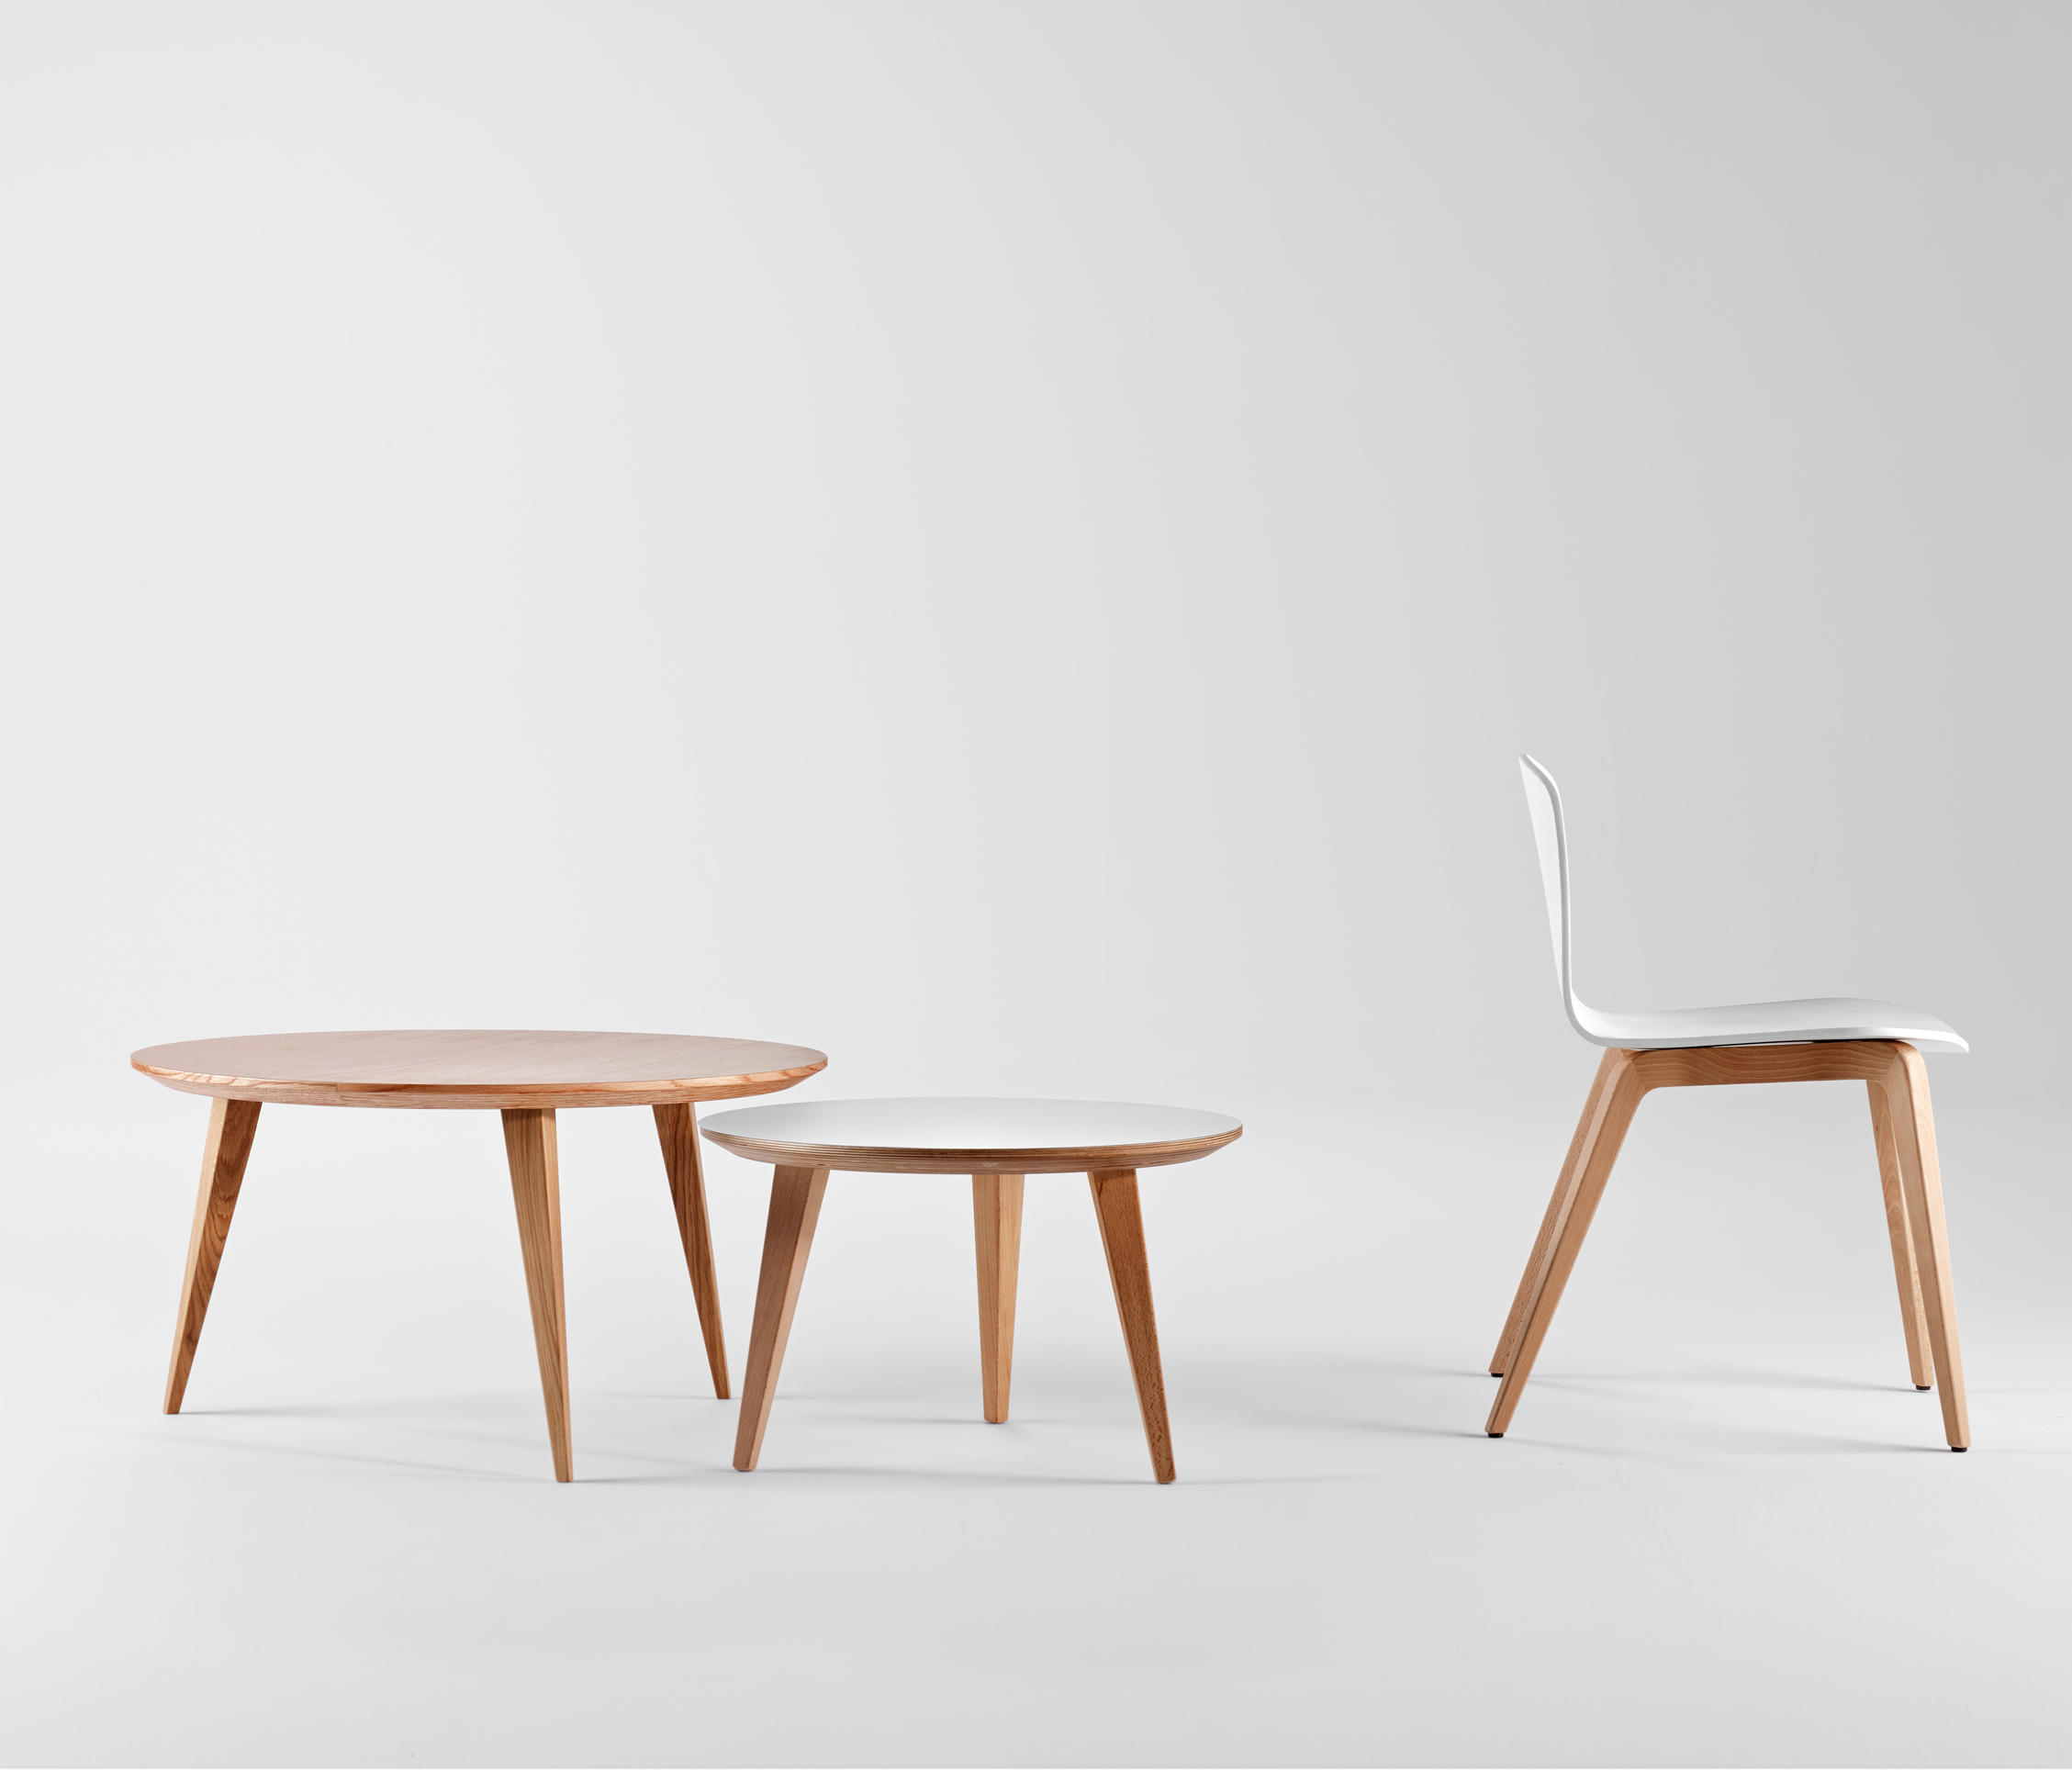 Wondrous Bob Wood Chair Chairs From Ondarreta Architonic Creativecarmelina Interior Chair Design Creativecarmelinacom